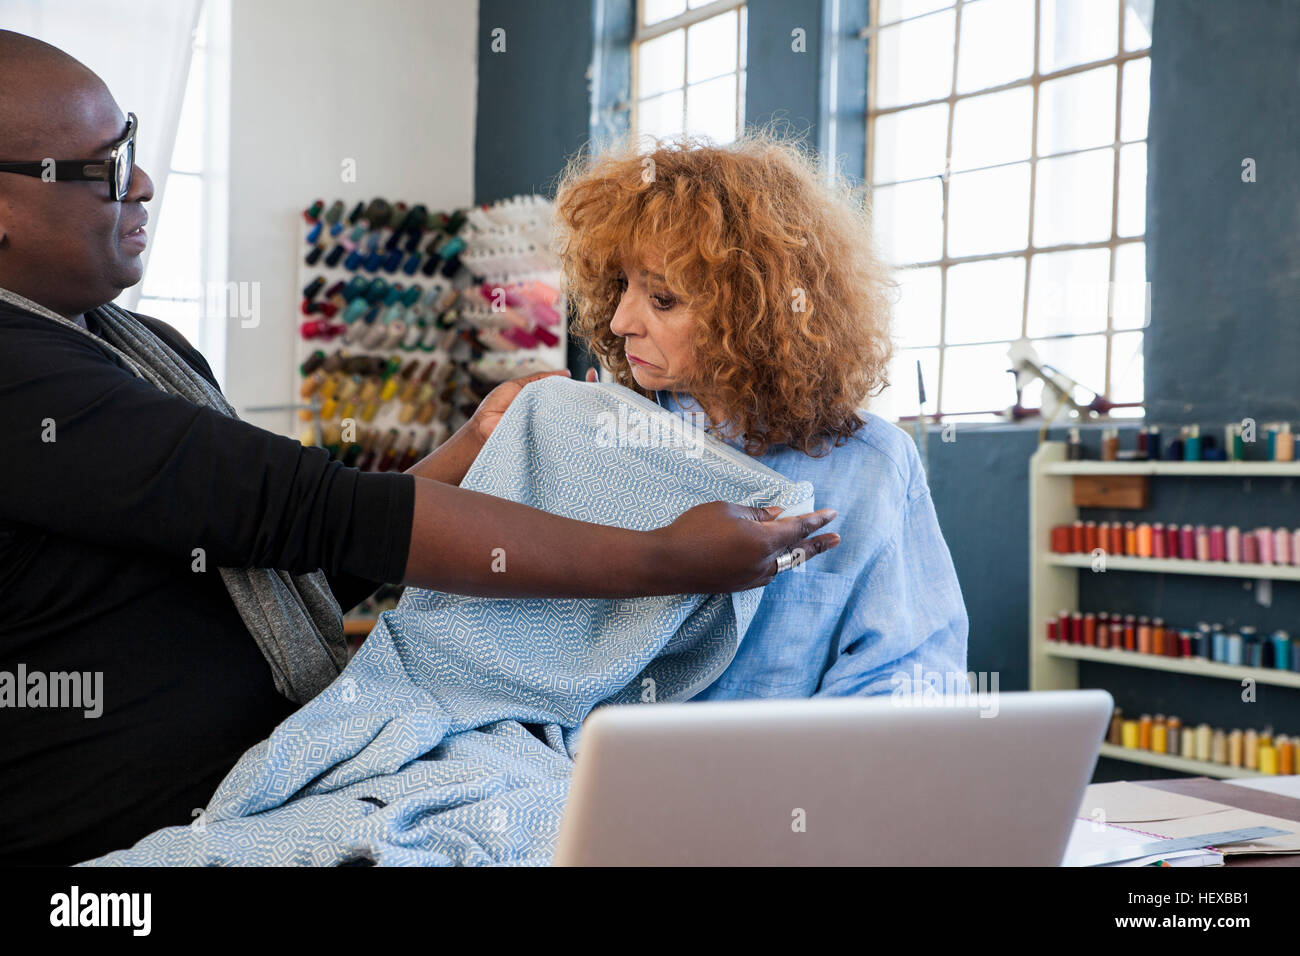 Male fashion designer trying blue material against seamstress  in design studio - Stock Image